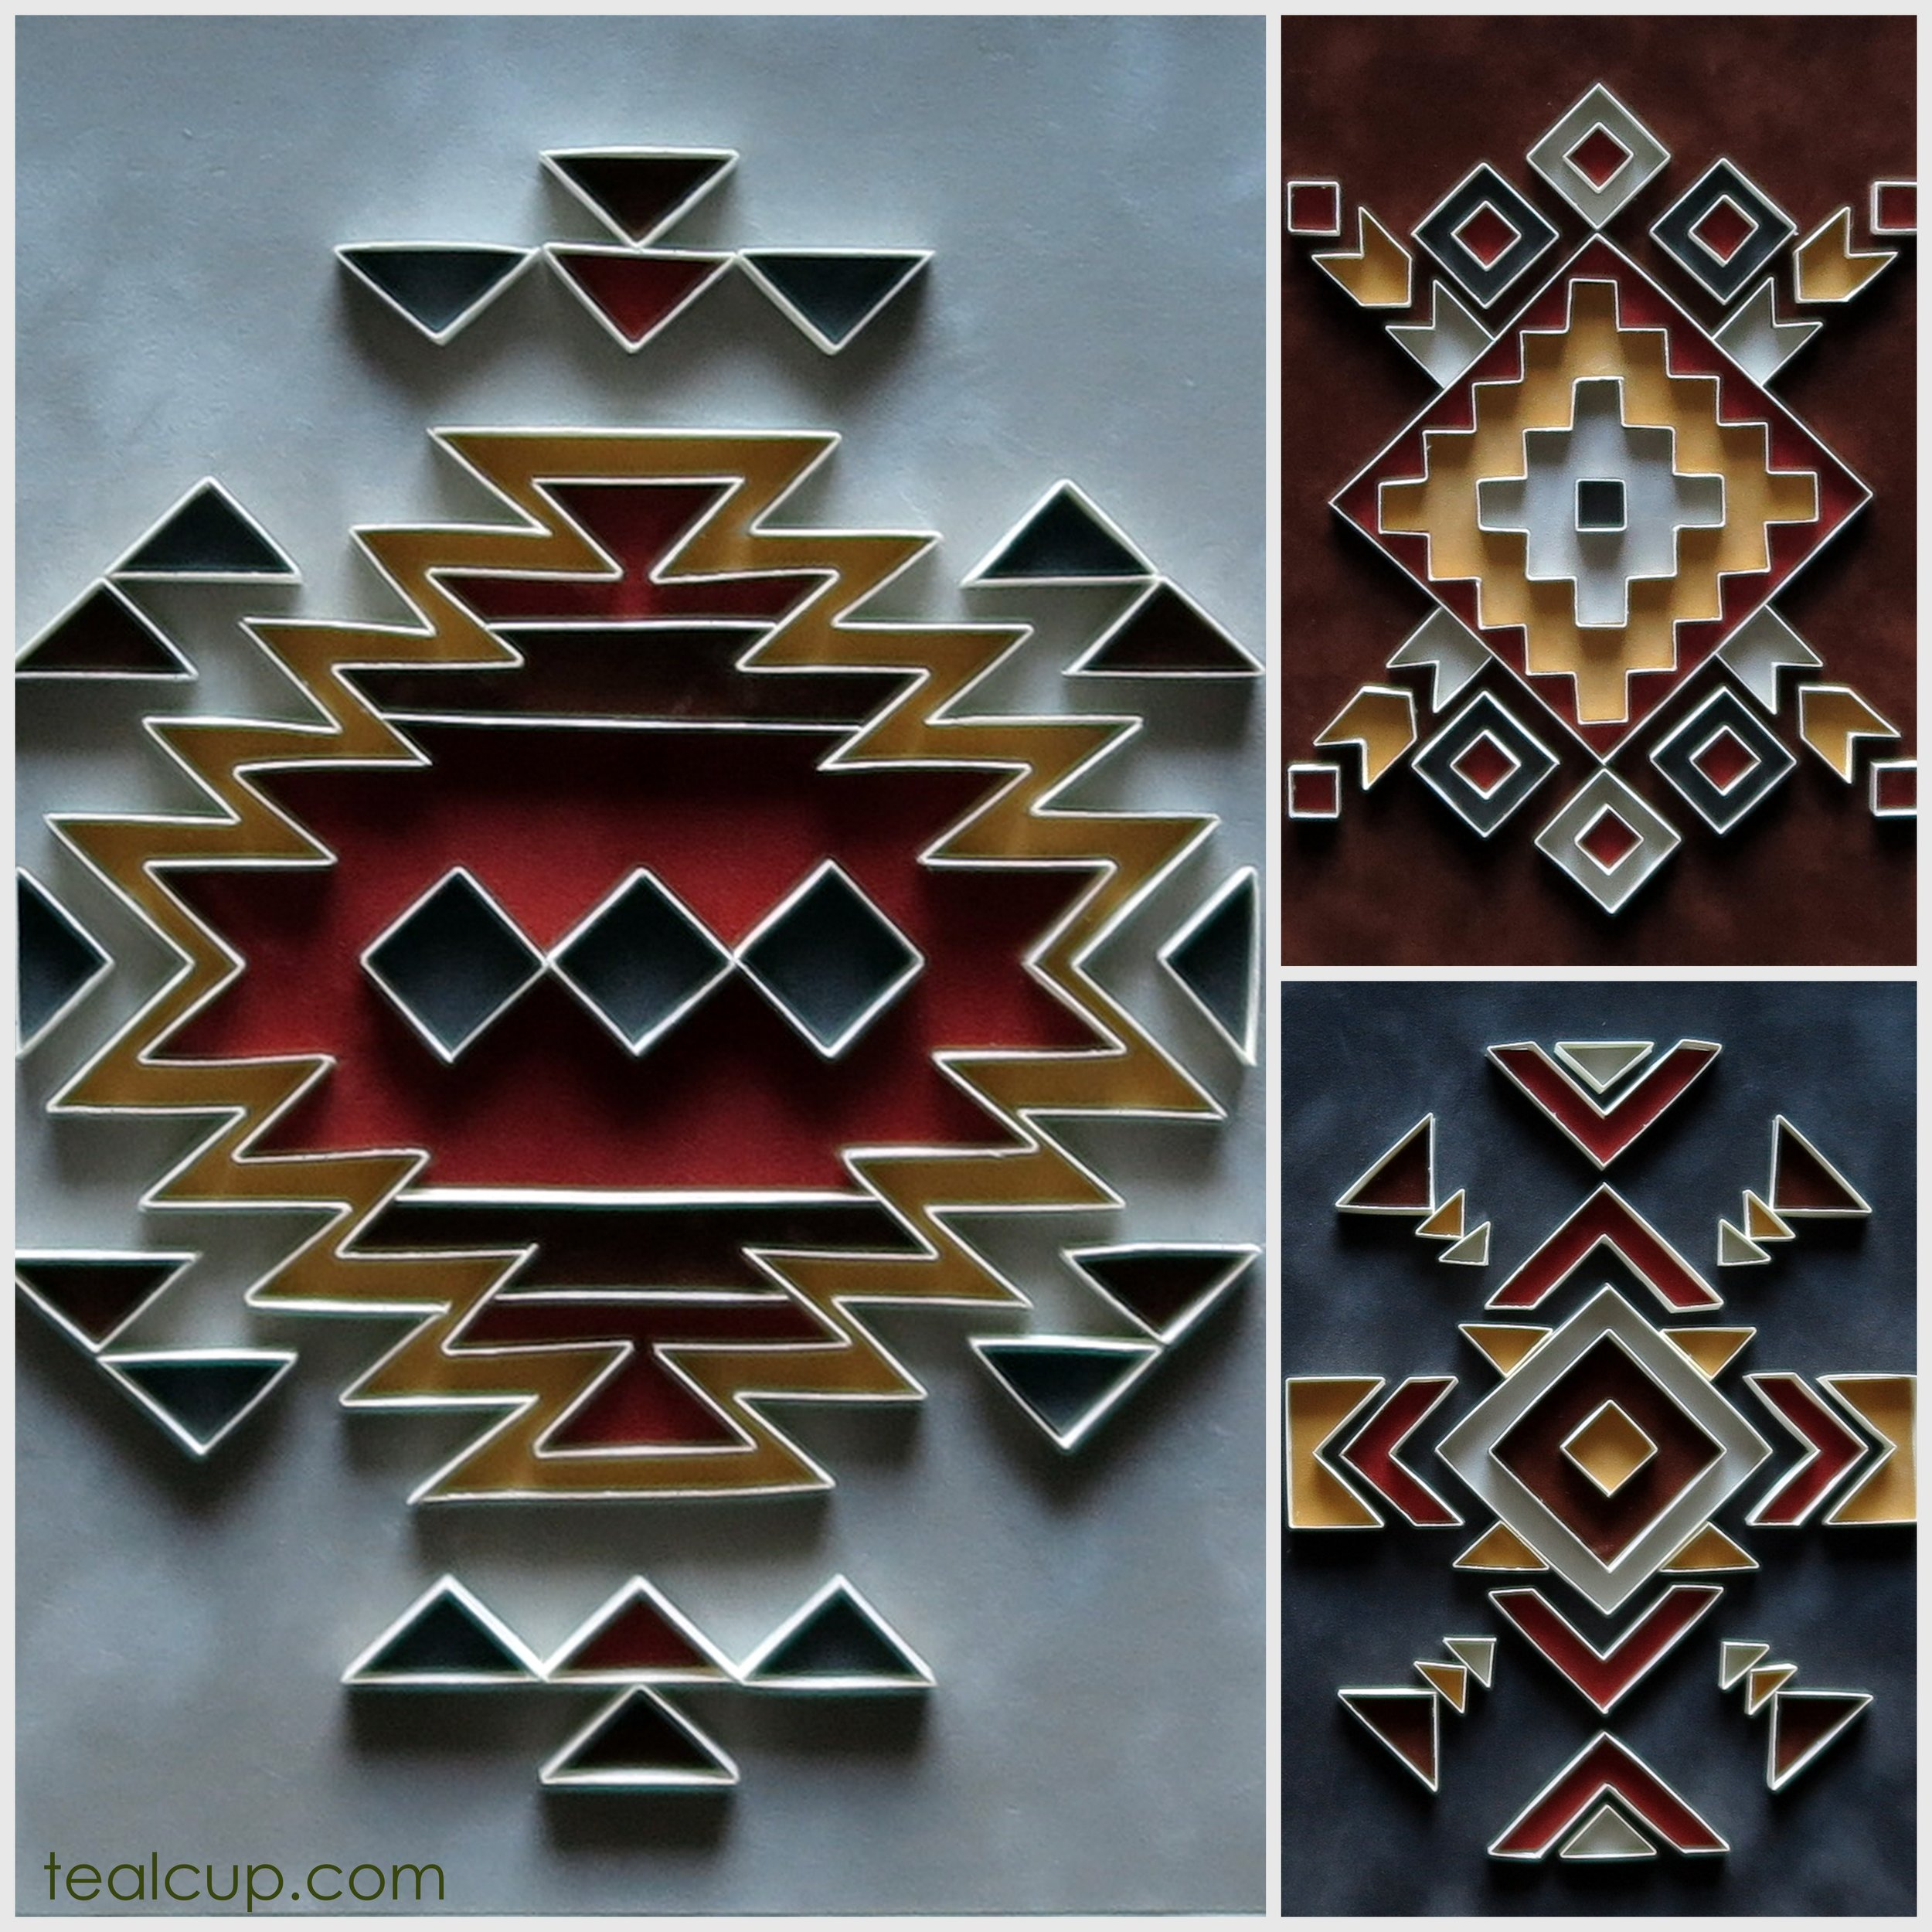 quilling 18 19 20-002.jpg